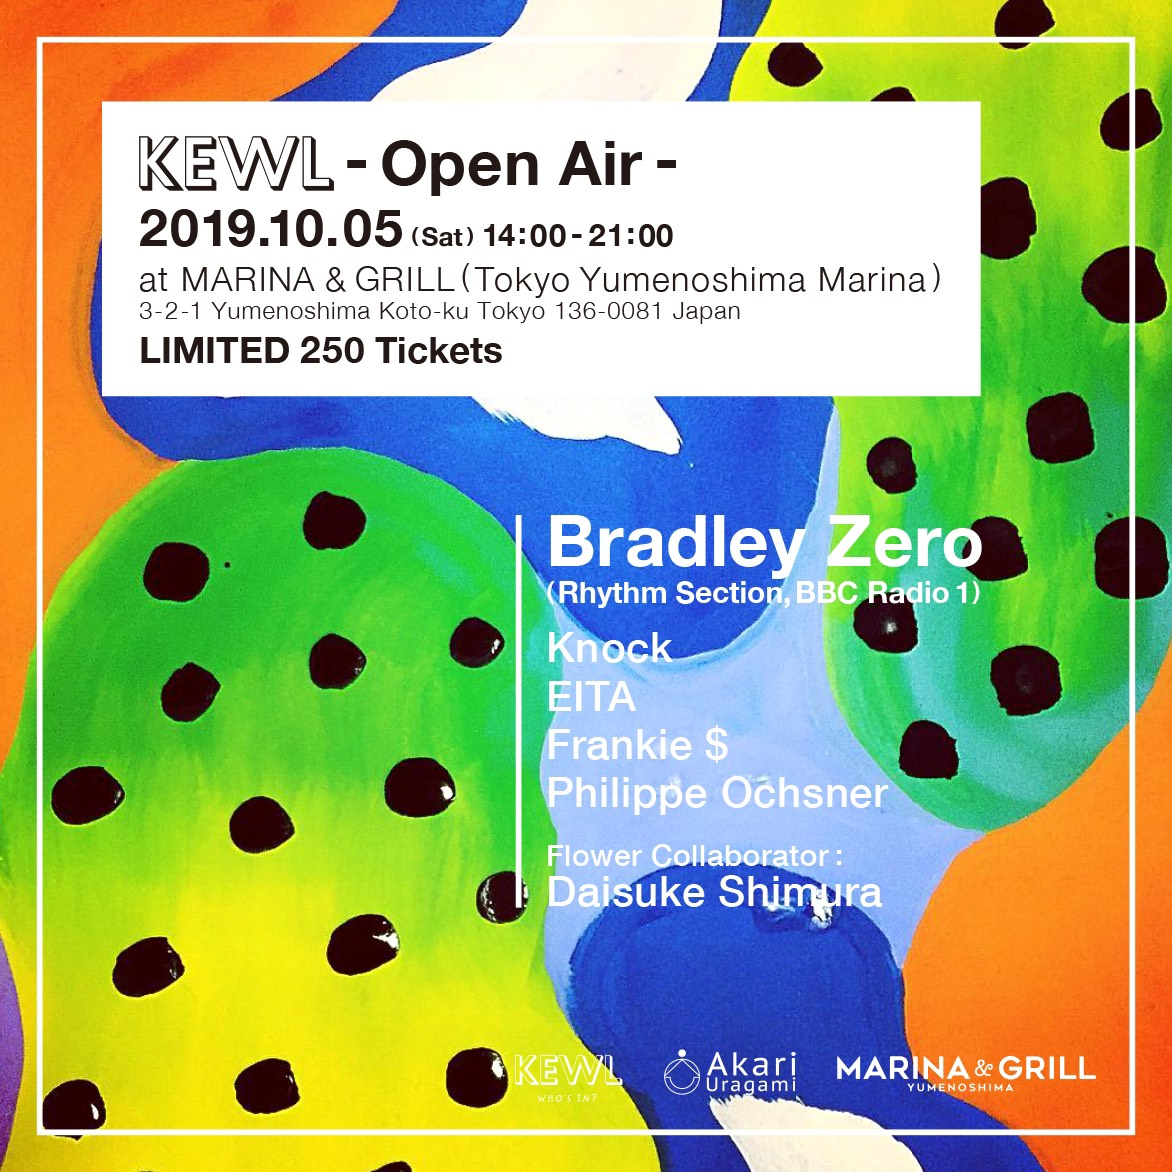 KEWL -Open Air- with Bradley Zero